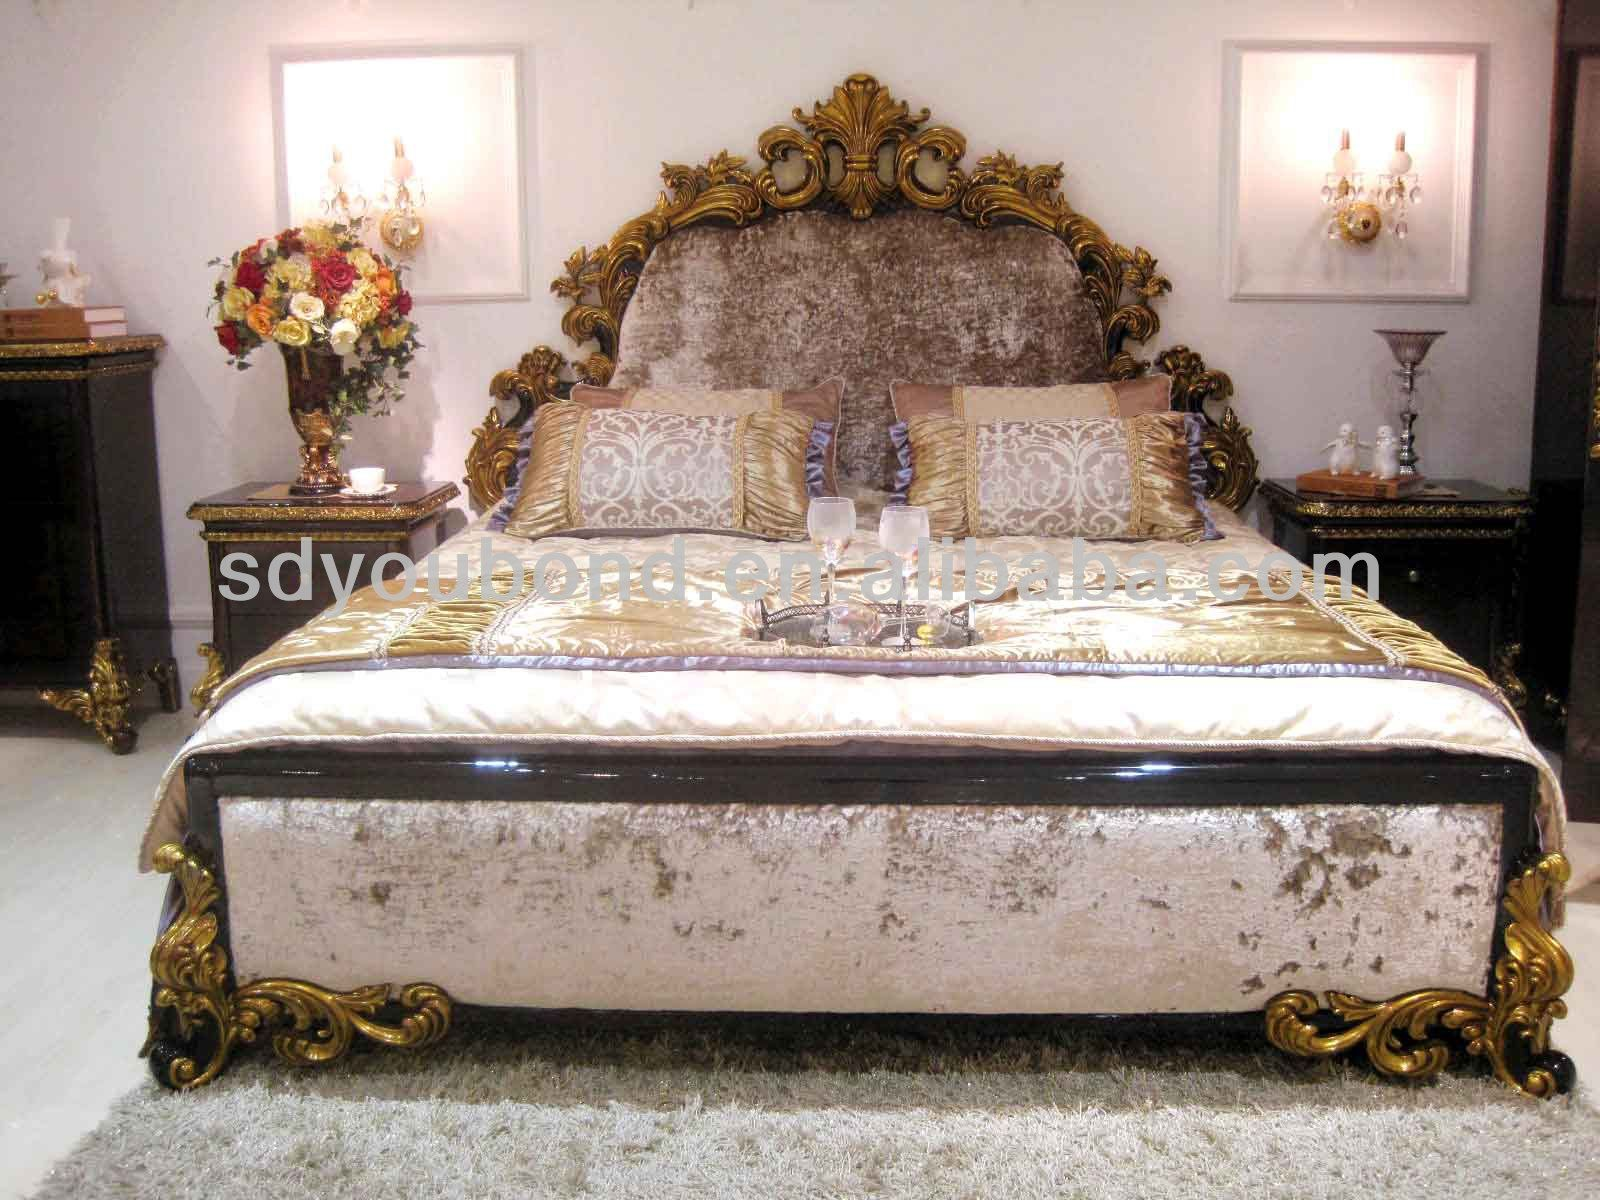 italian bedroom furniture 2014. 0063 high end middle east royal palace funiture wooden carved classic luxury home furniture buy furnitureroyal italian bedroom 2014